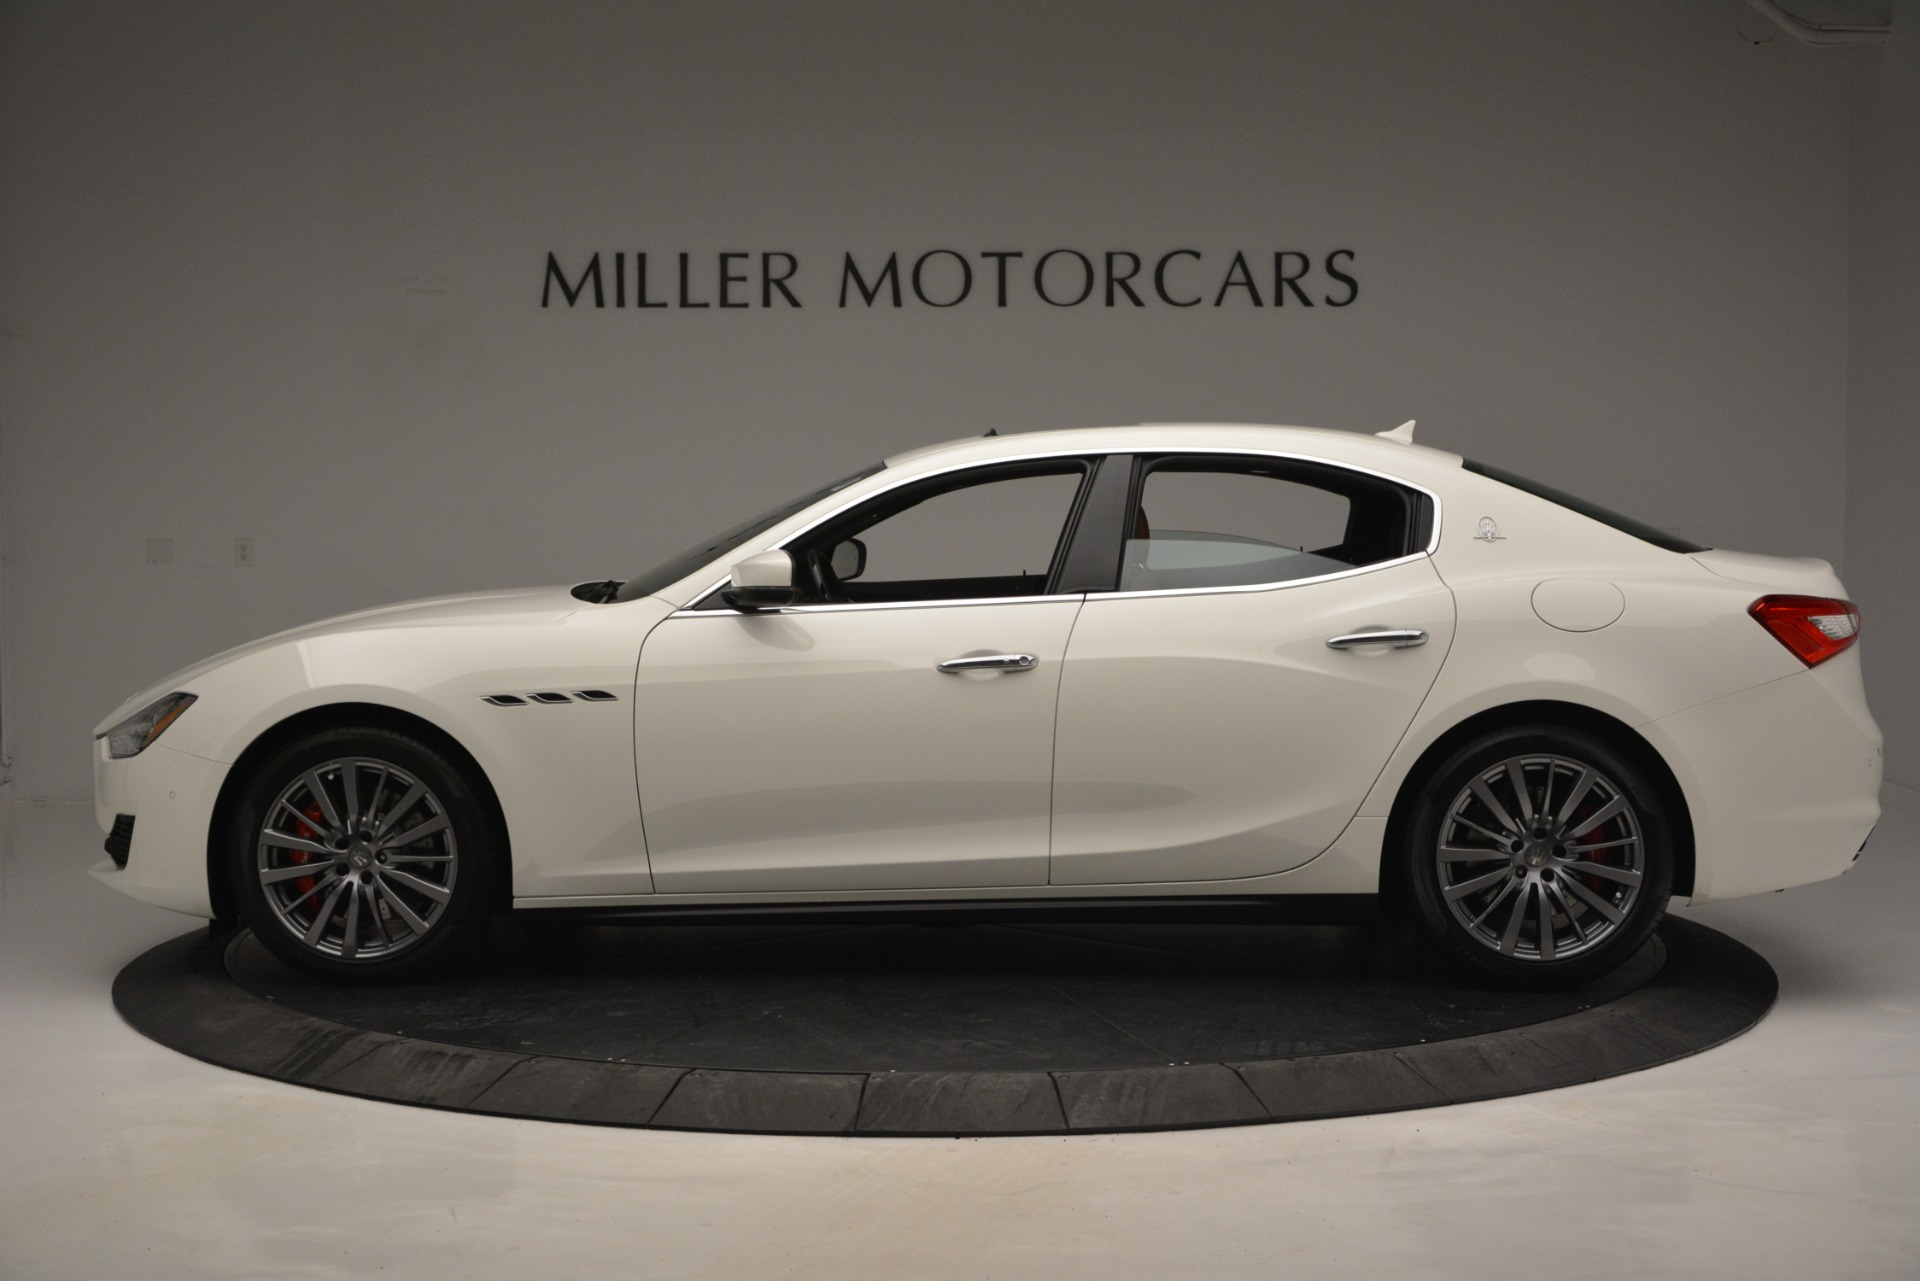 New 2019 Maserati Ghibli S Q4 For Sale In Greenwich, CT 2795_p4